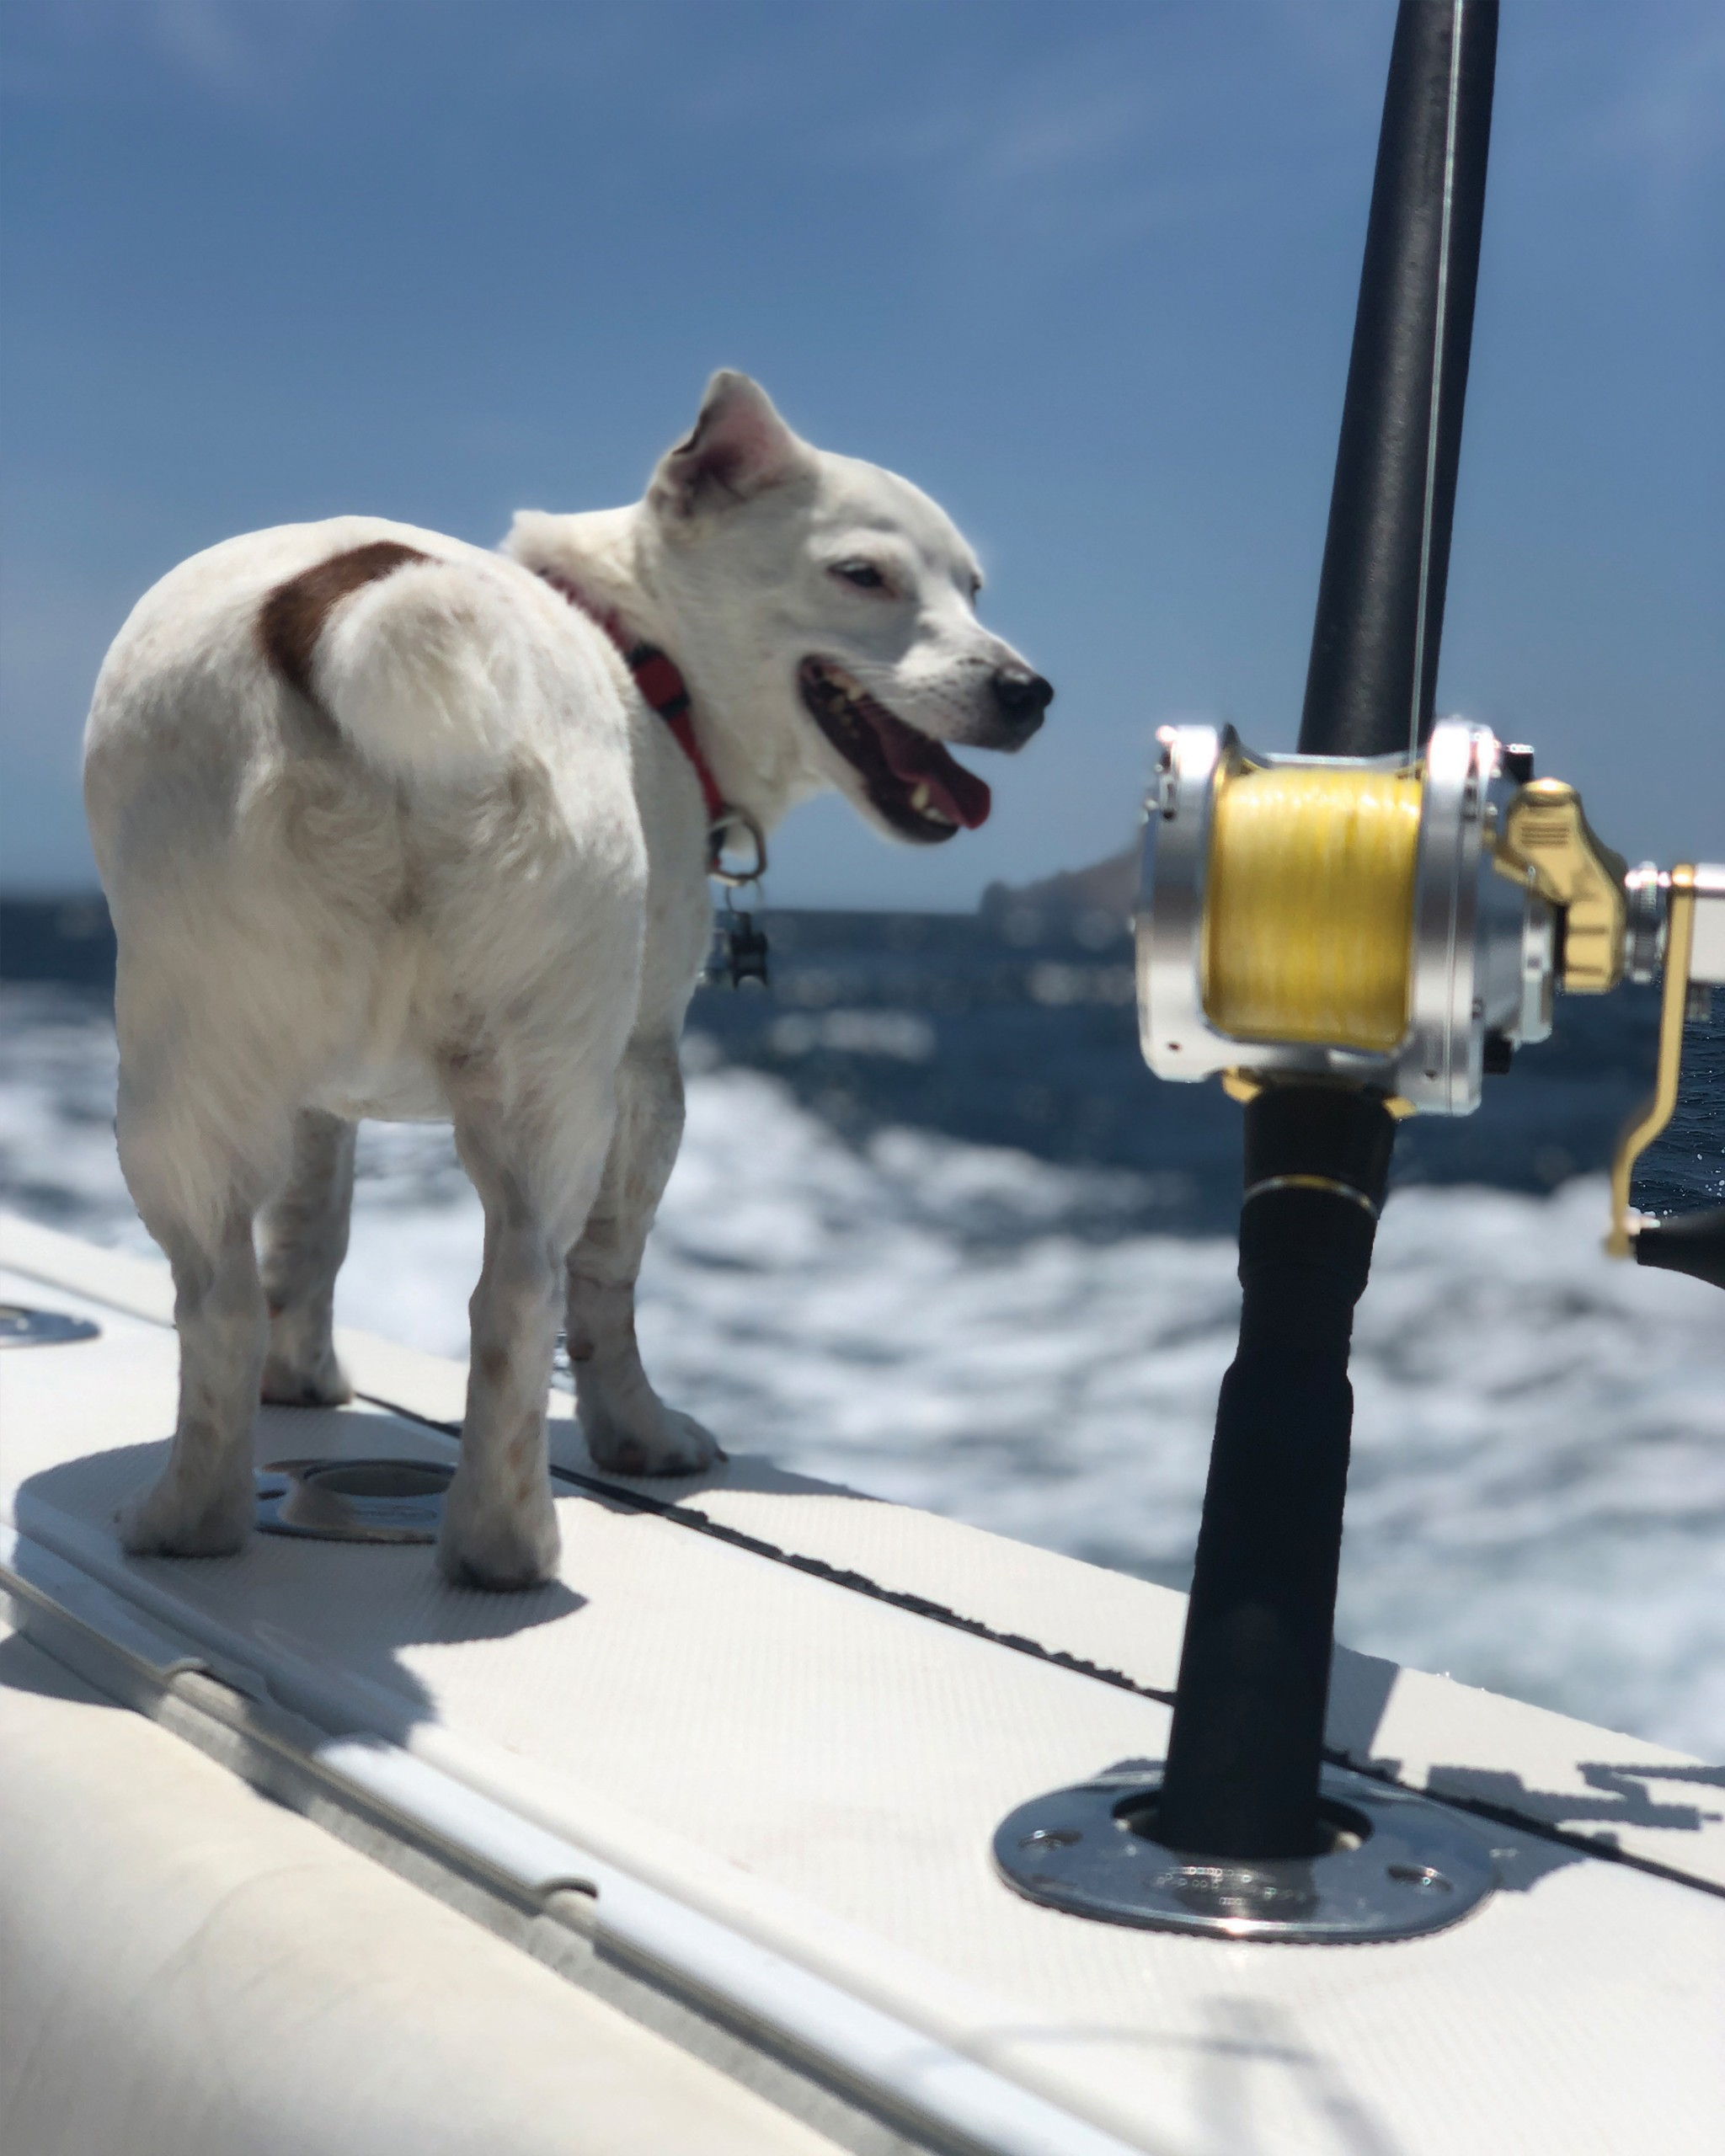 a white dog and a fishing rod with yellow line next to it